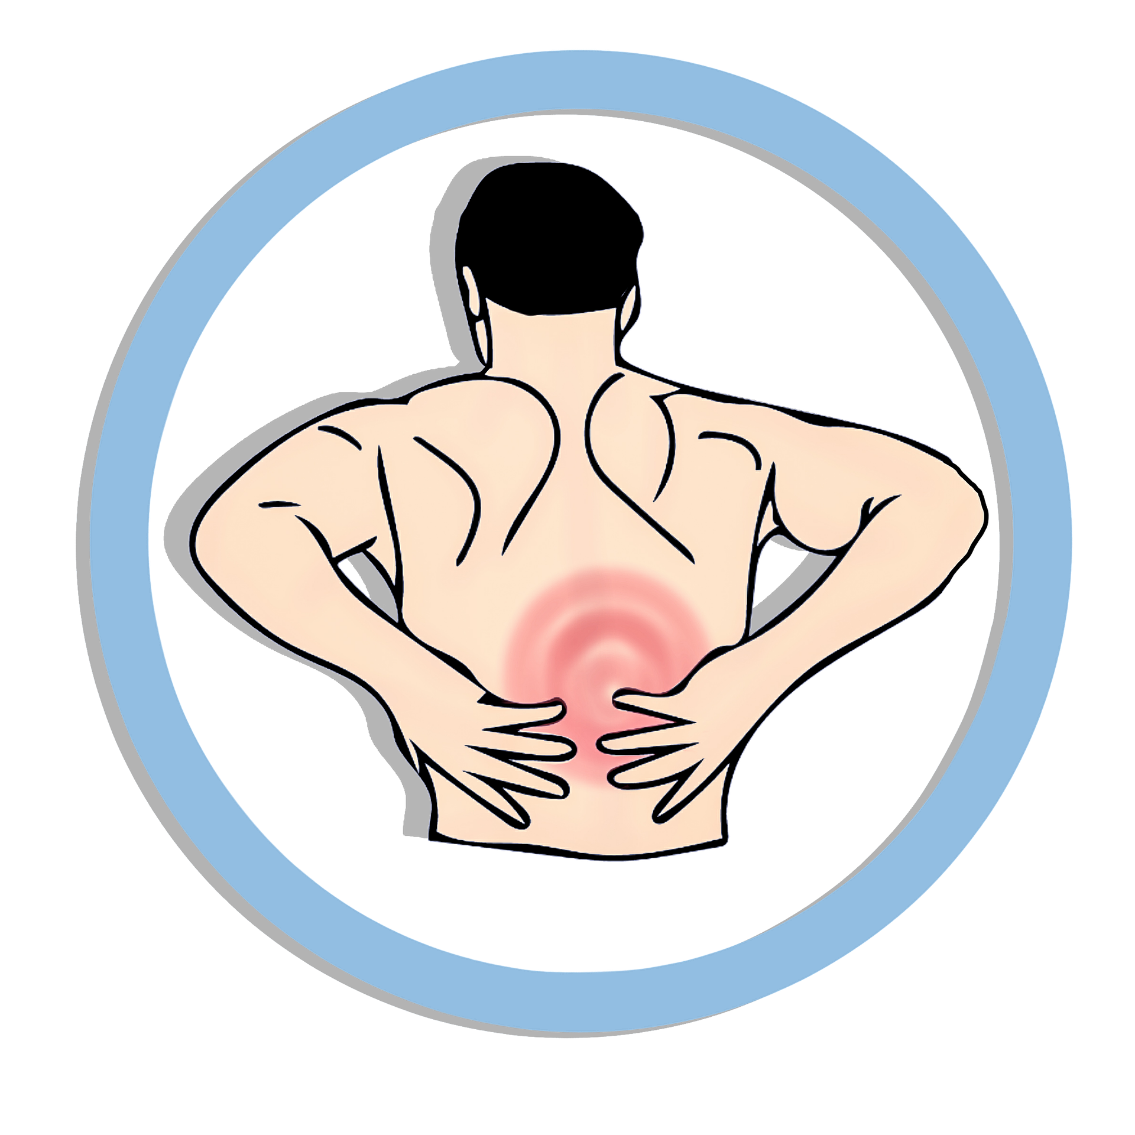 Pain clipart backache, Pain backache Transparent FREE for.